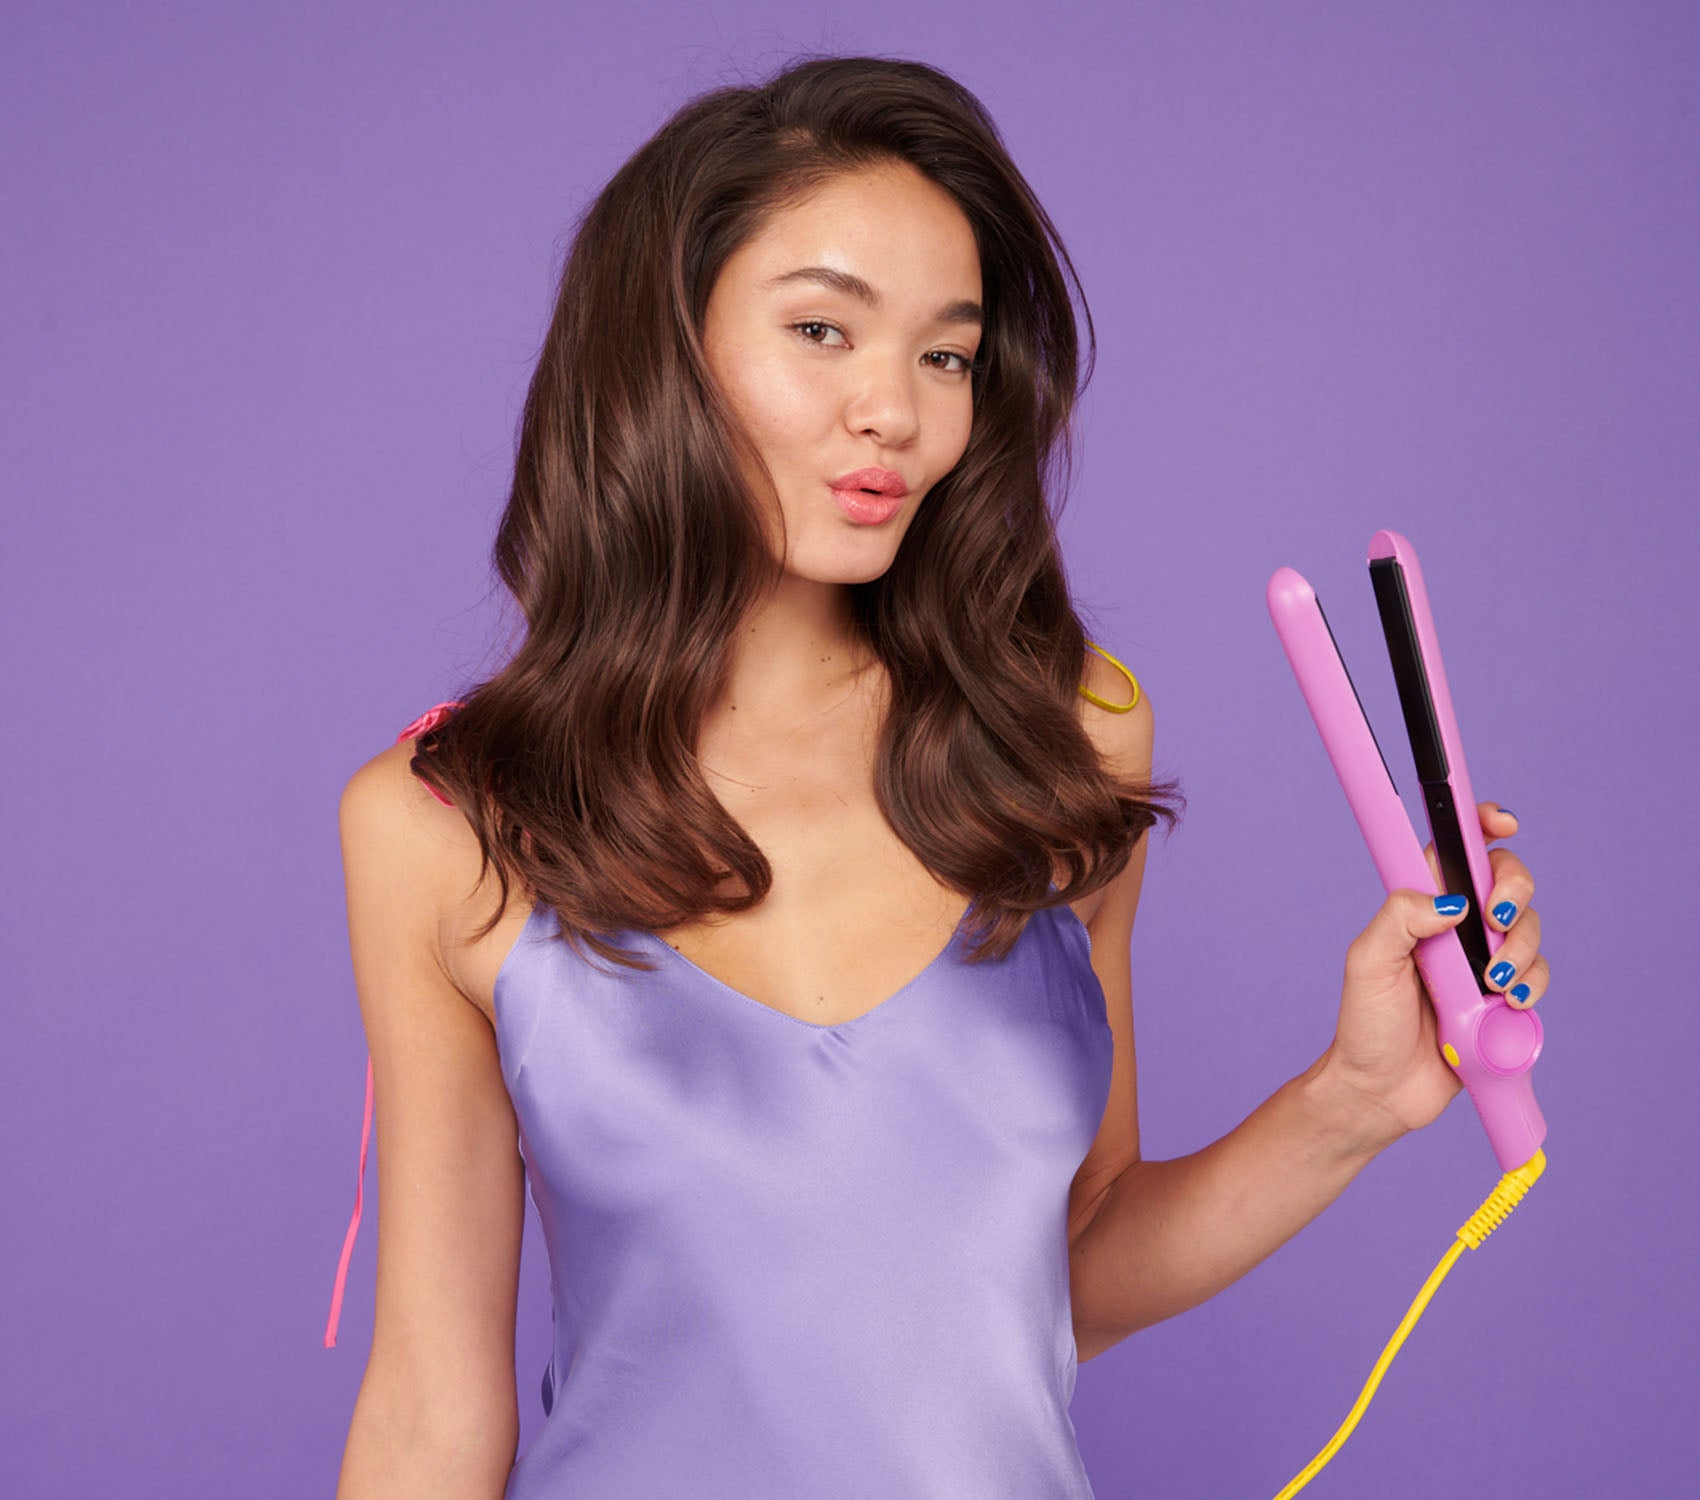 Woman straightening her hair with the Flower Ceramic Styling Iron